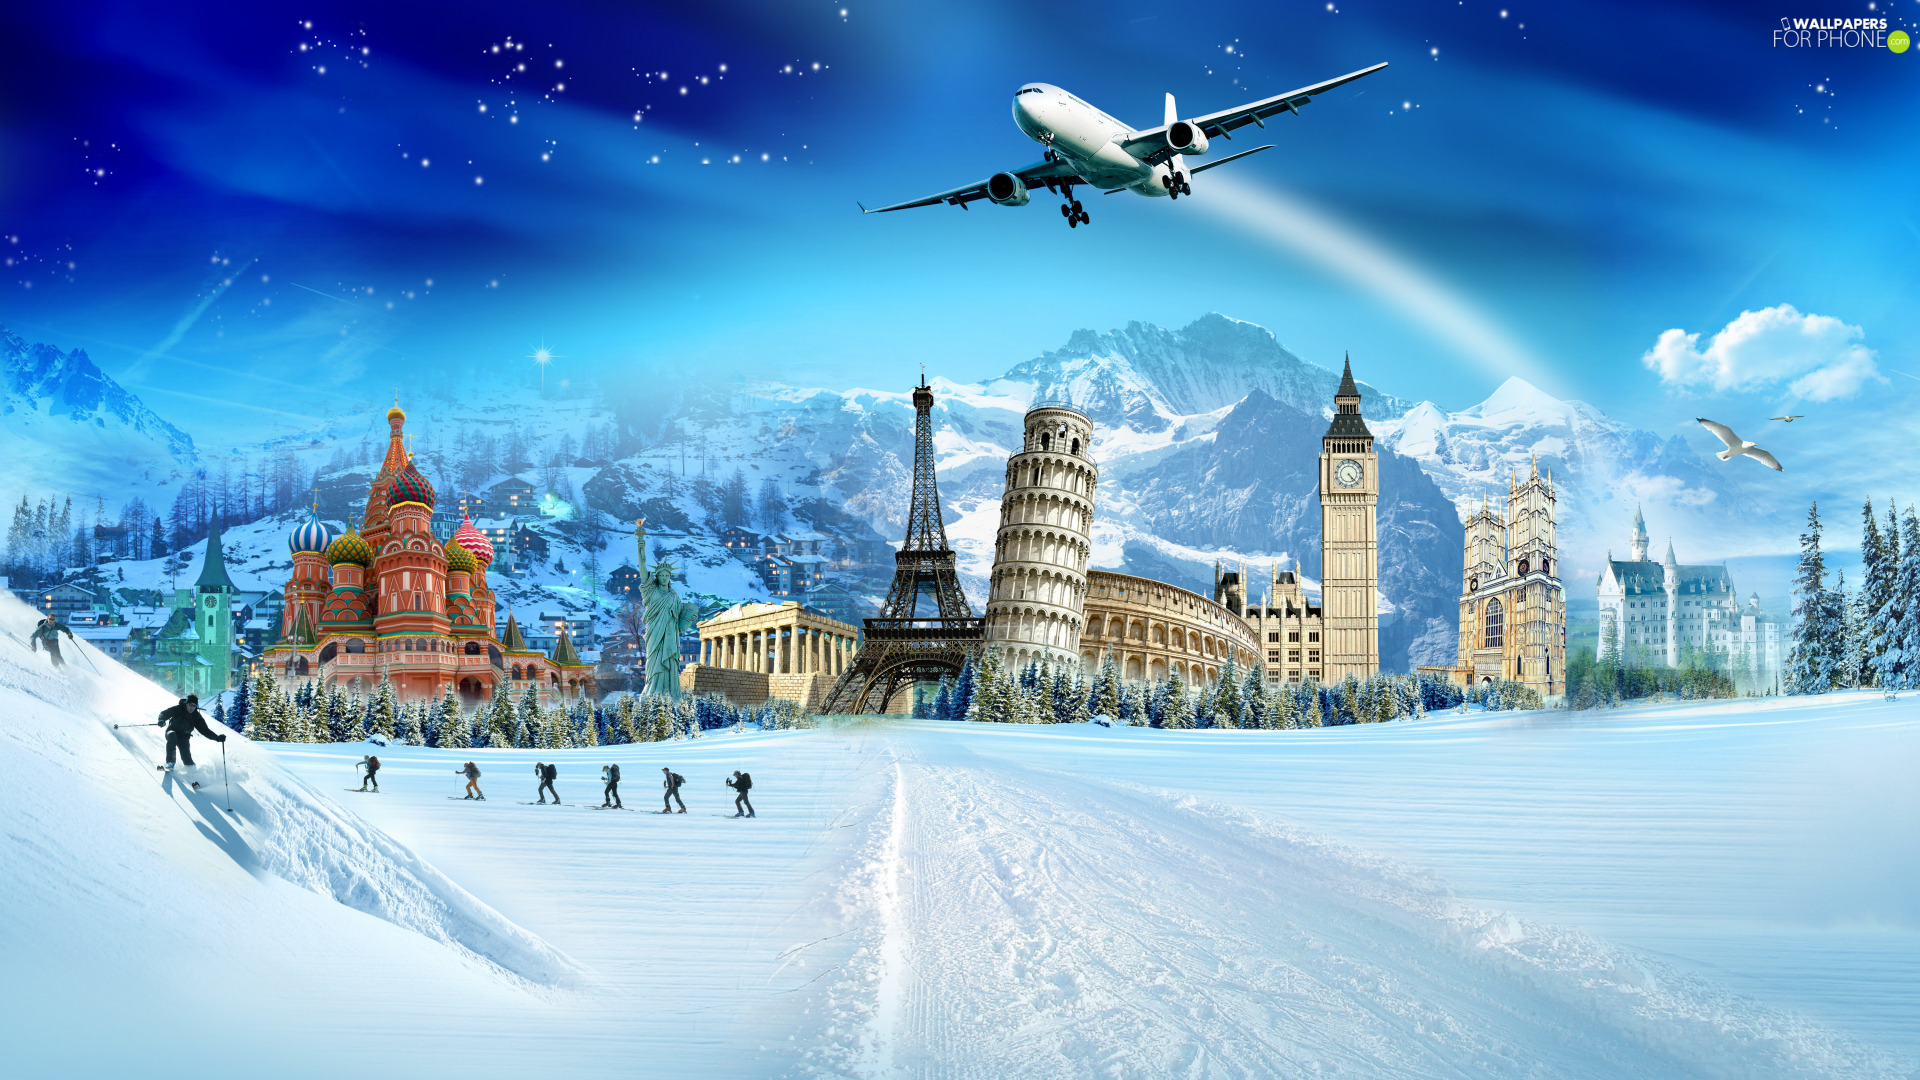 Skiers, Leaning Tower of Pisa, Eiffla Tower, Big Ben, structures, plane, fantasy, winter, Mountains, Sights